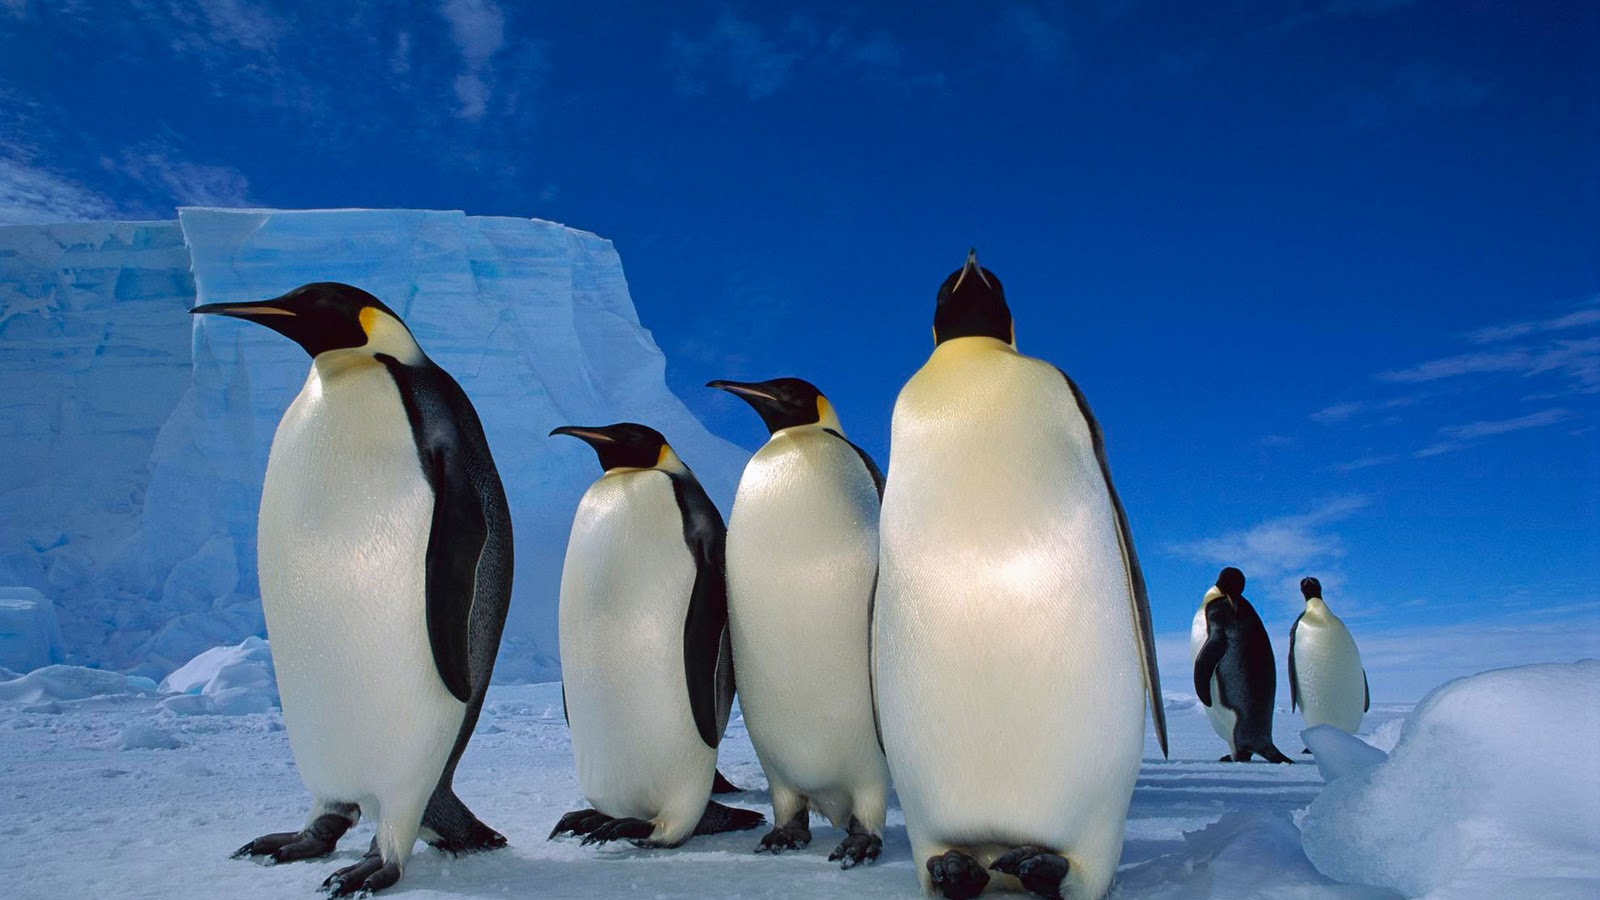 Penguin Wallpapers Hd Wallpapers Desktop Wallapers HD Wallpapers Download Free Images Wallpaper [1000image.com]